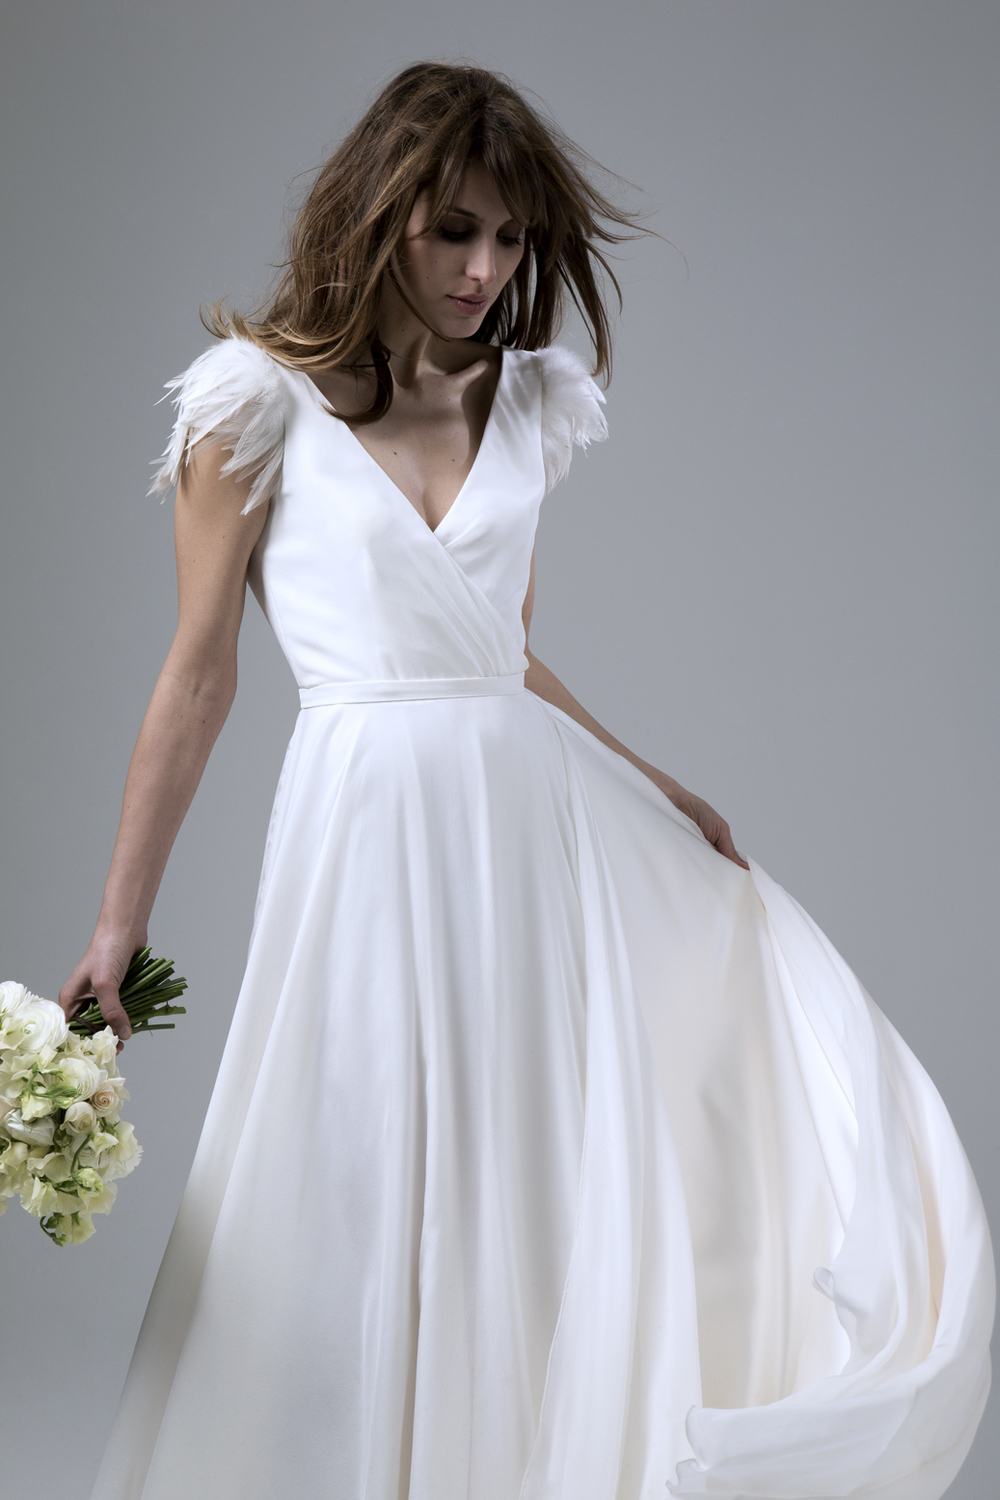 Flora romance halfpenny london daisy silk chiffon cross over wedding dress by halfpenny london ombrellifo Image collections